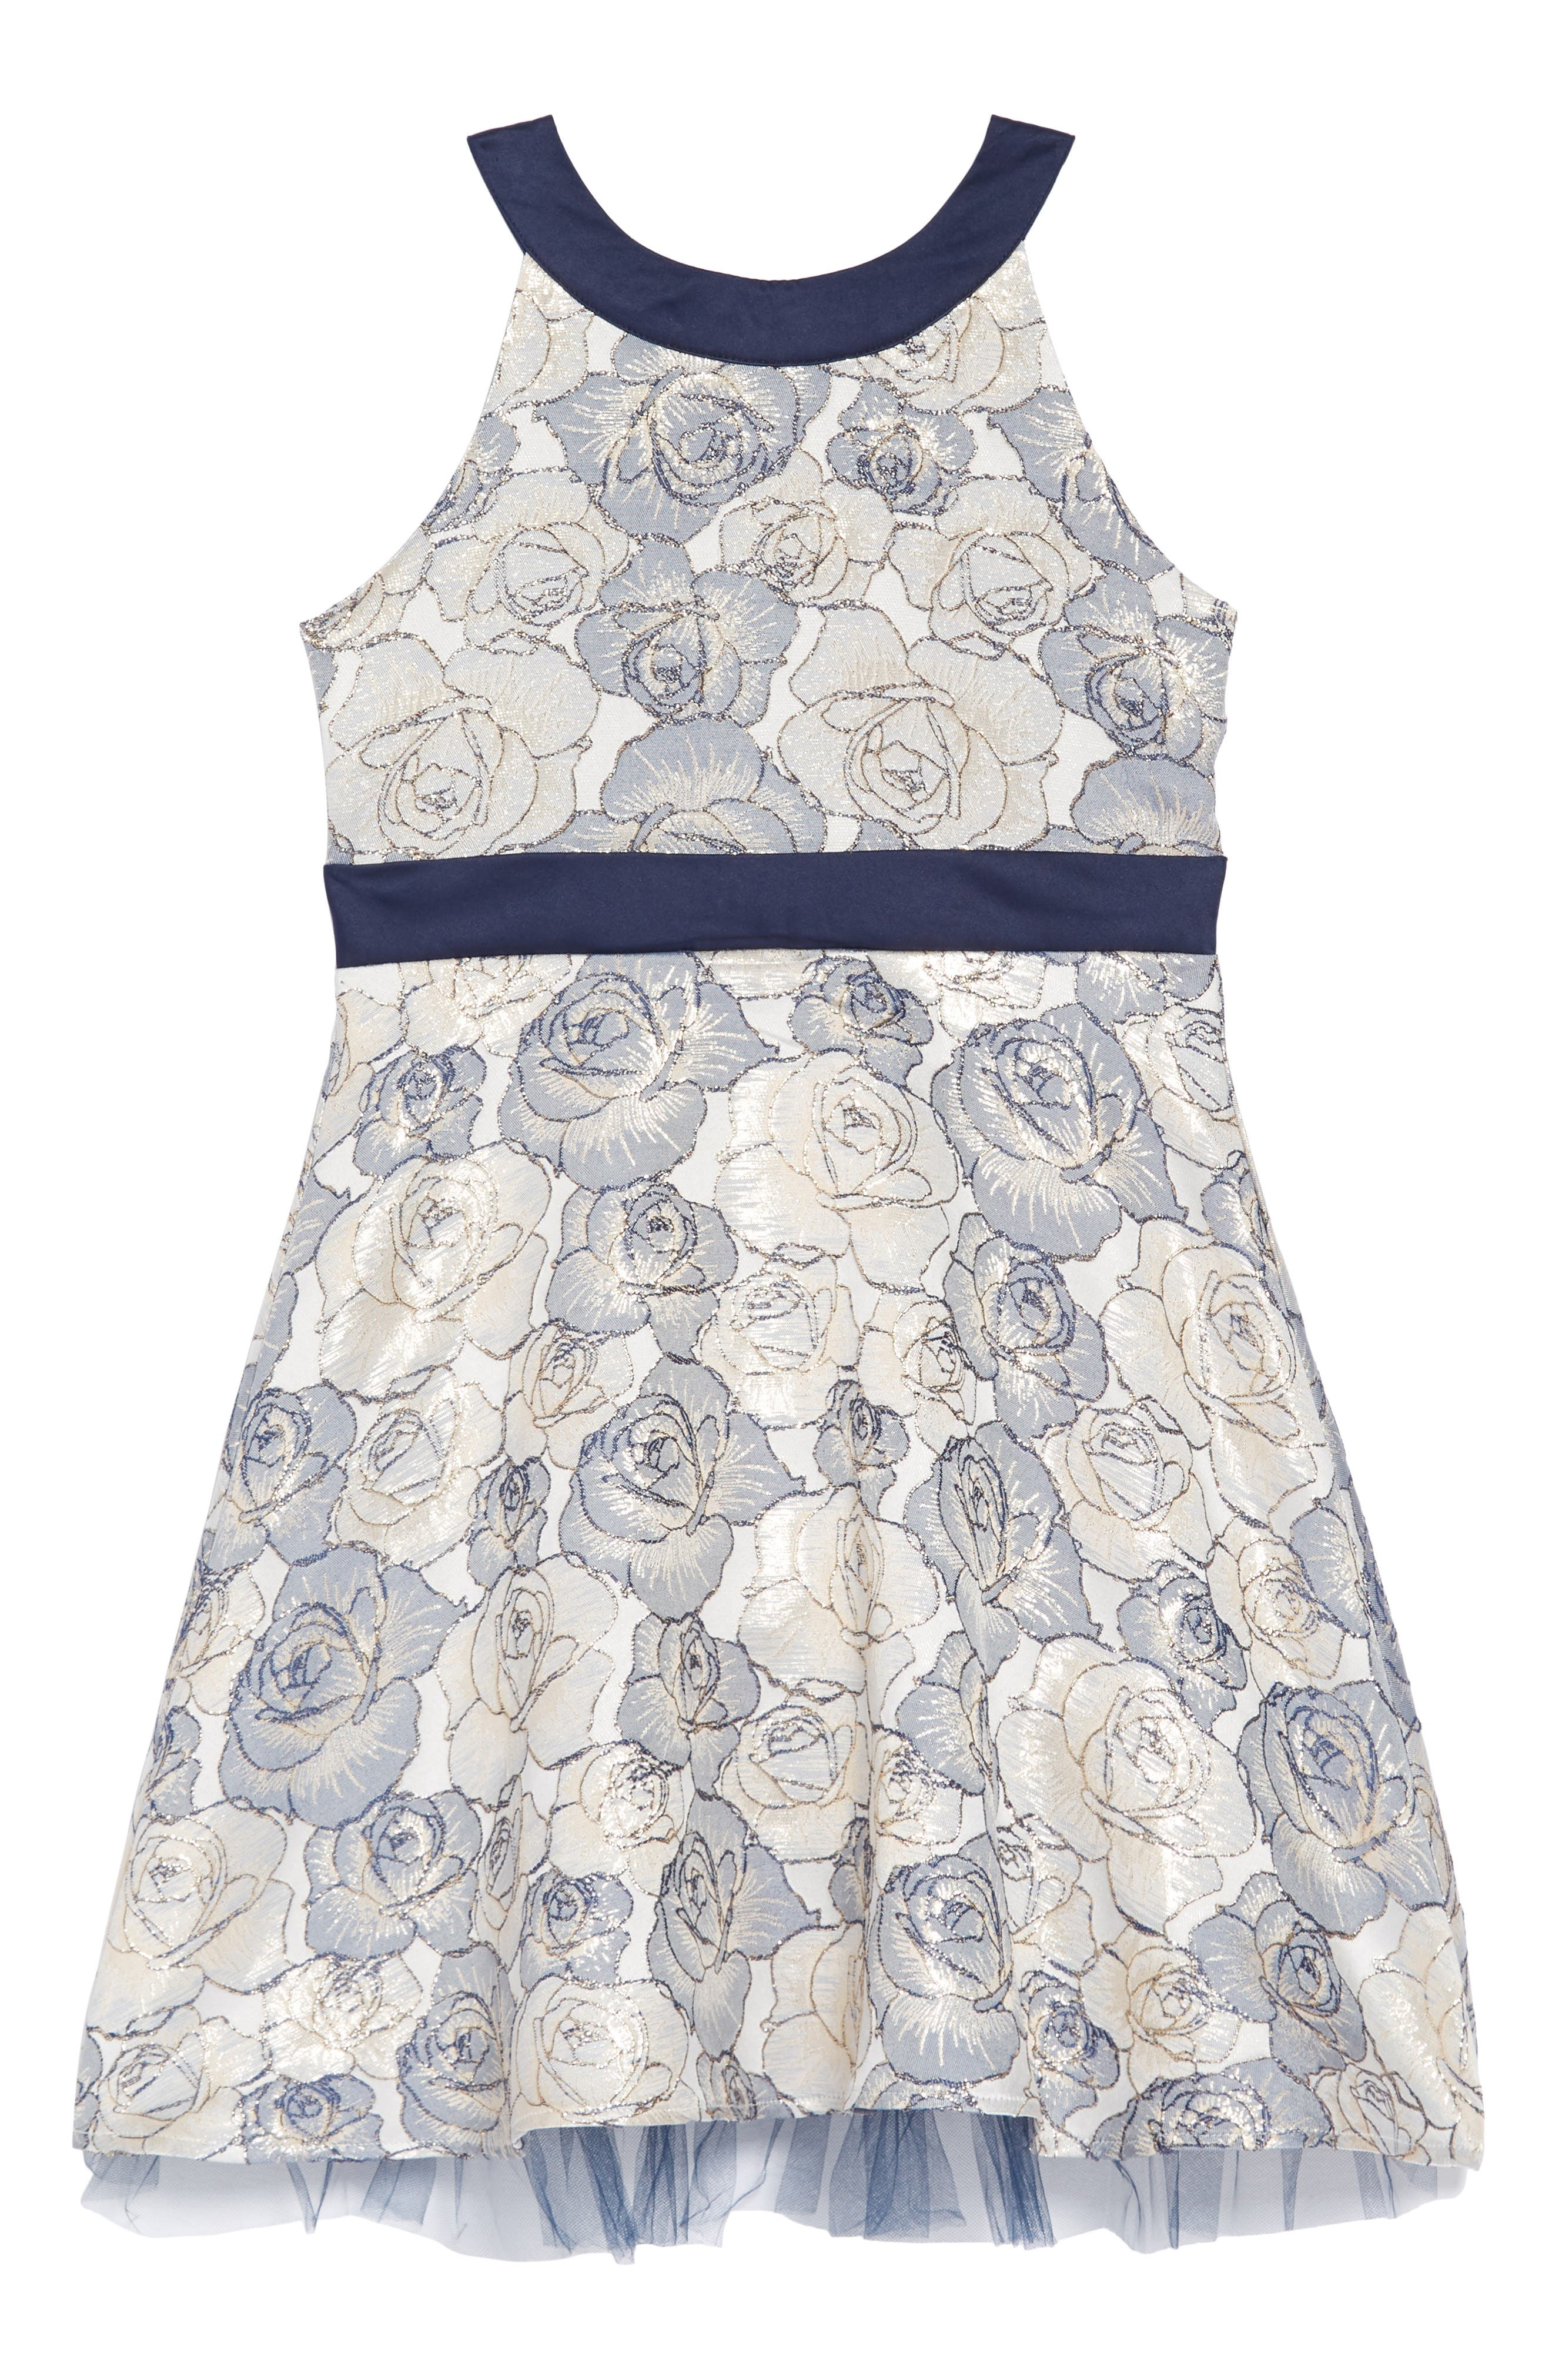 Floral Brocade Fit & Flare Dress,                         Main,                         color, NAVY/GOLD